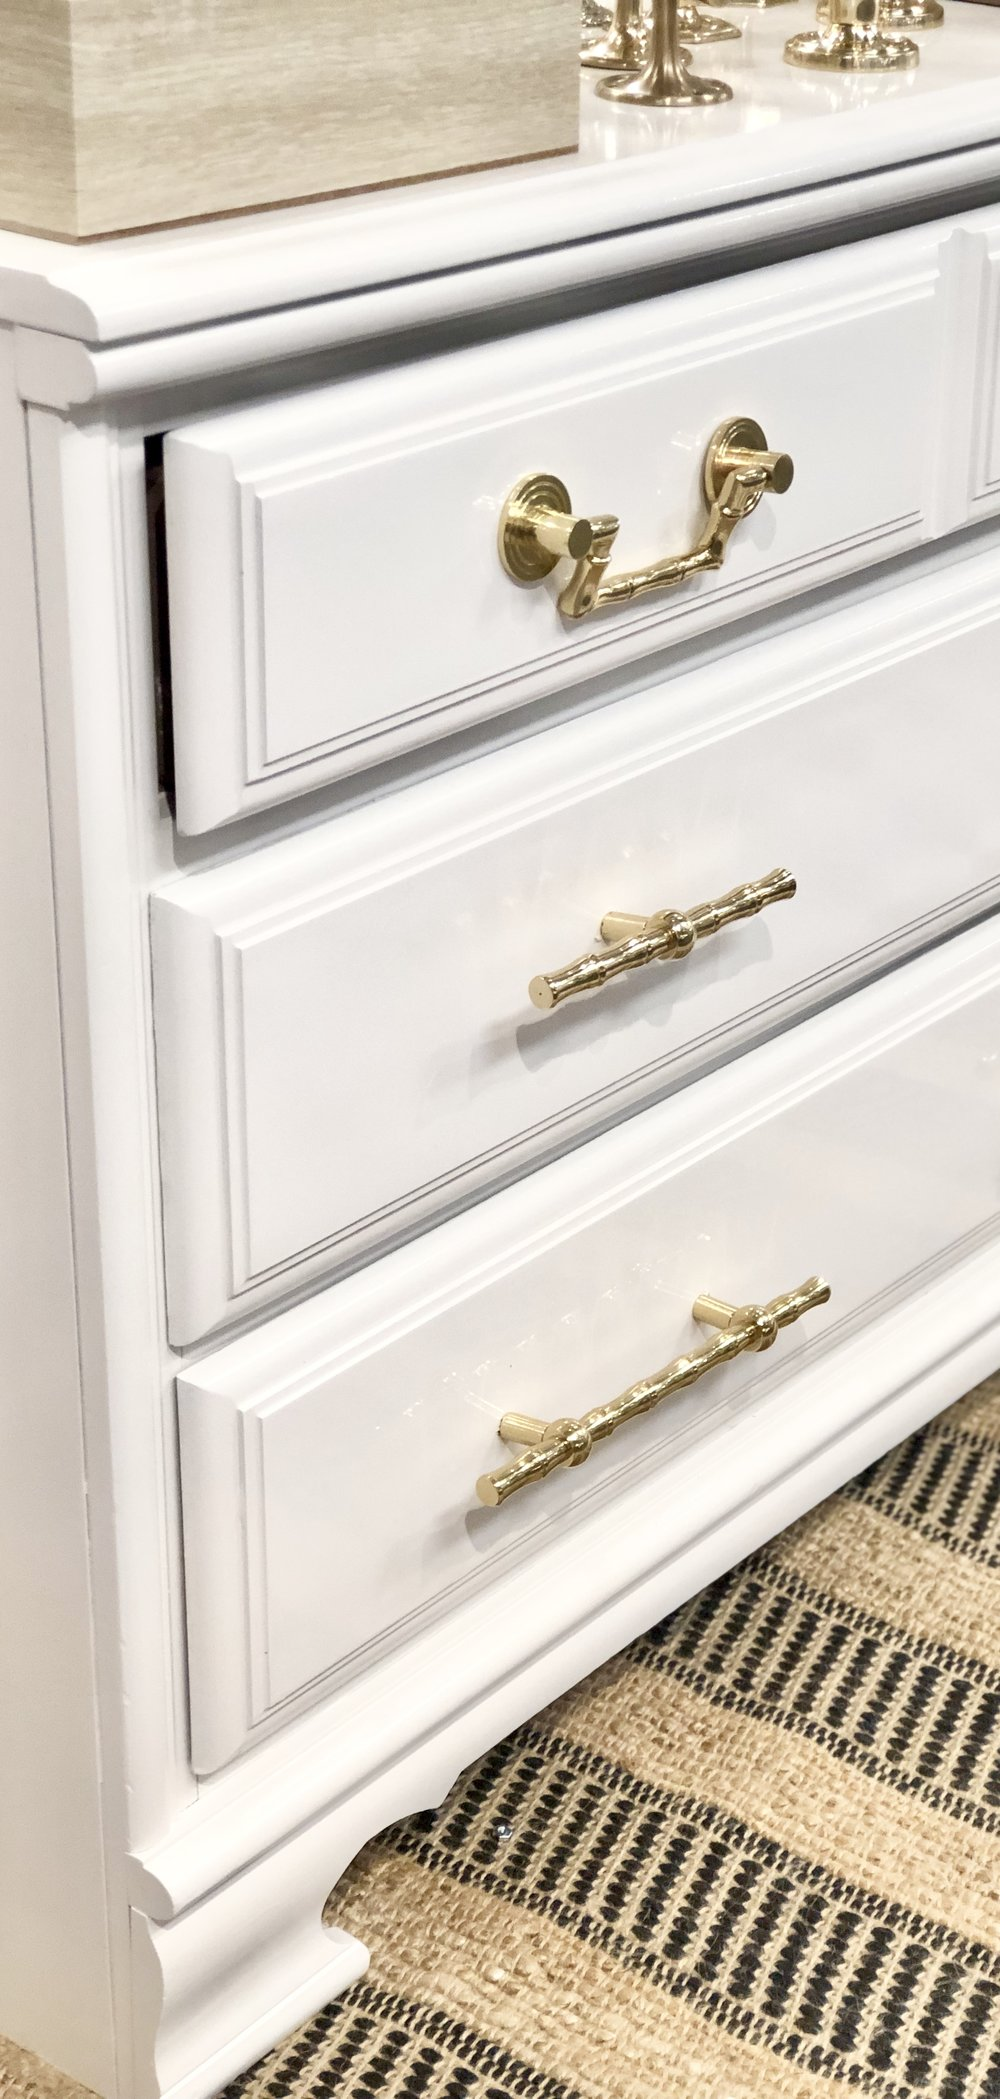 Take a look at the size of the drawers compared to the samples of hardware on the front—large and in charge!